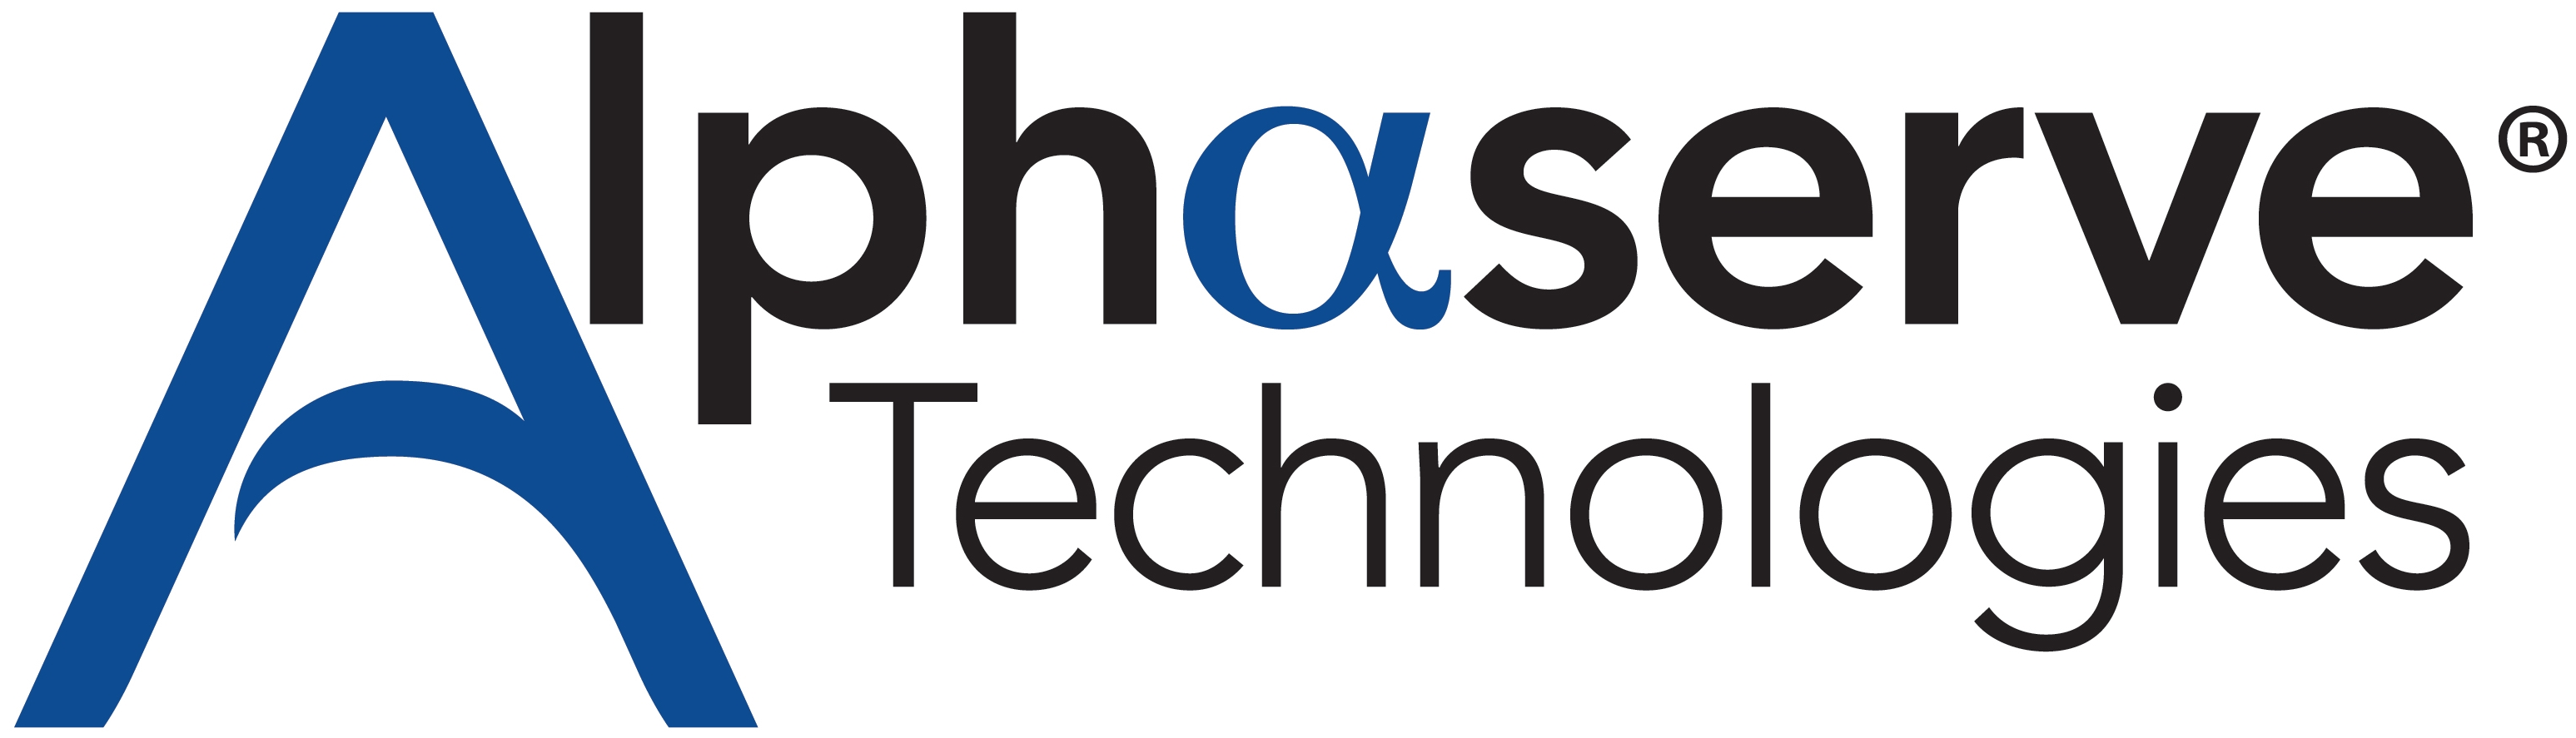 Alphaserve_Technologies Logo Large